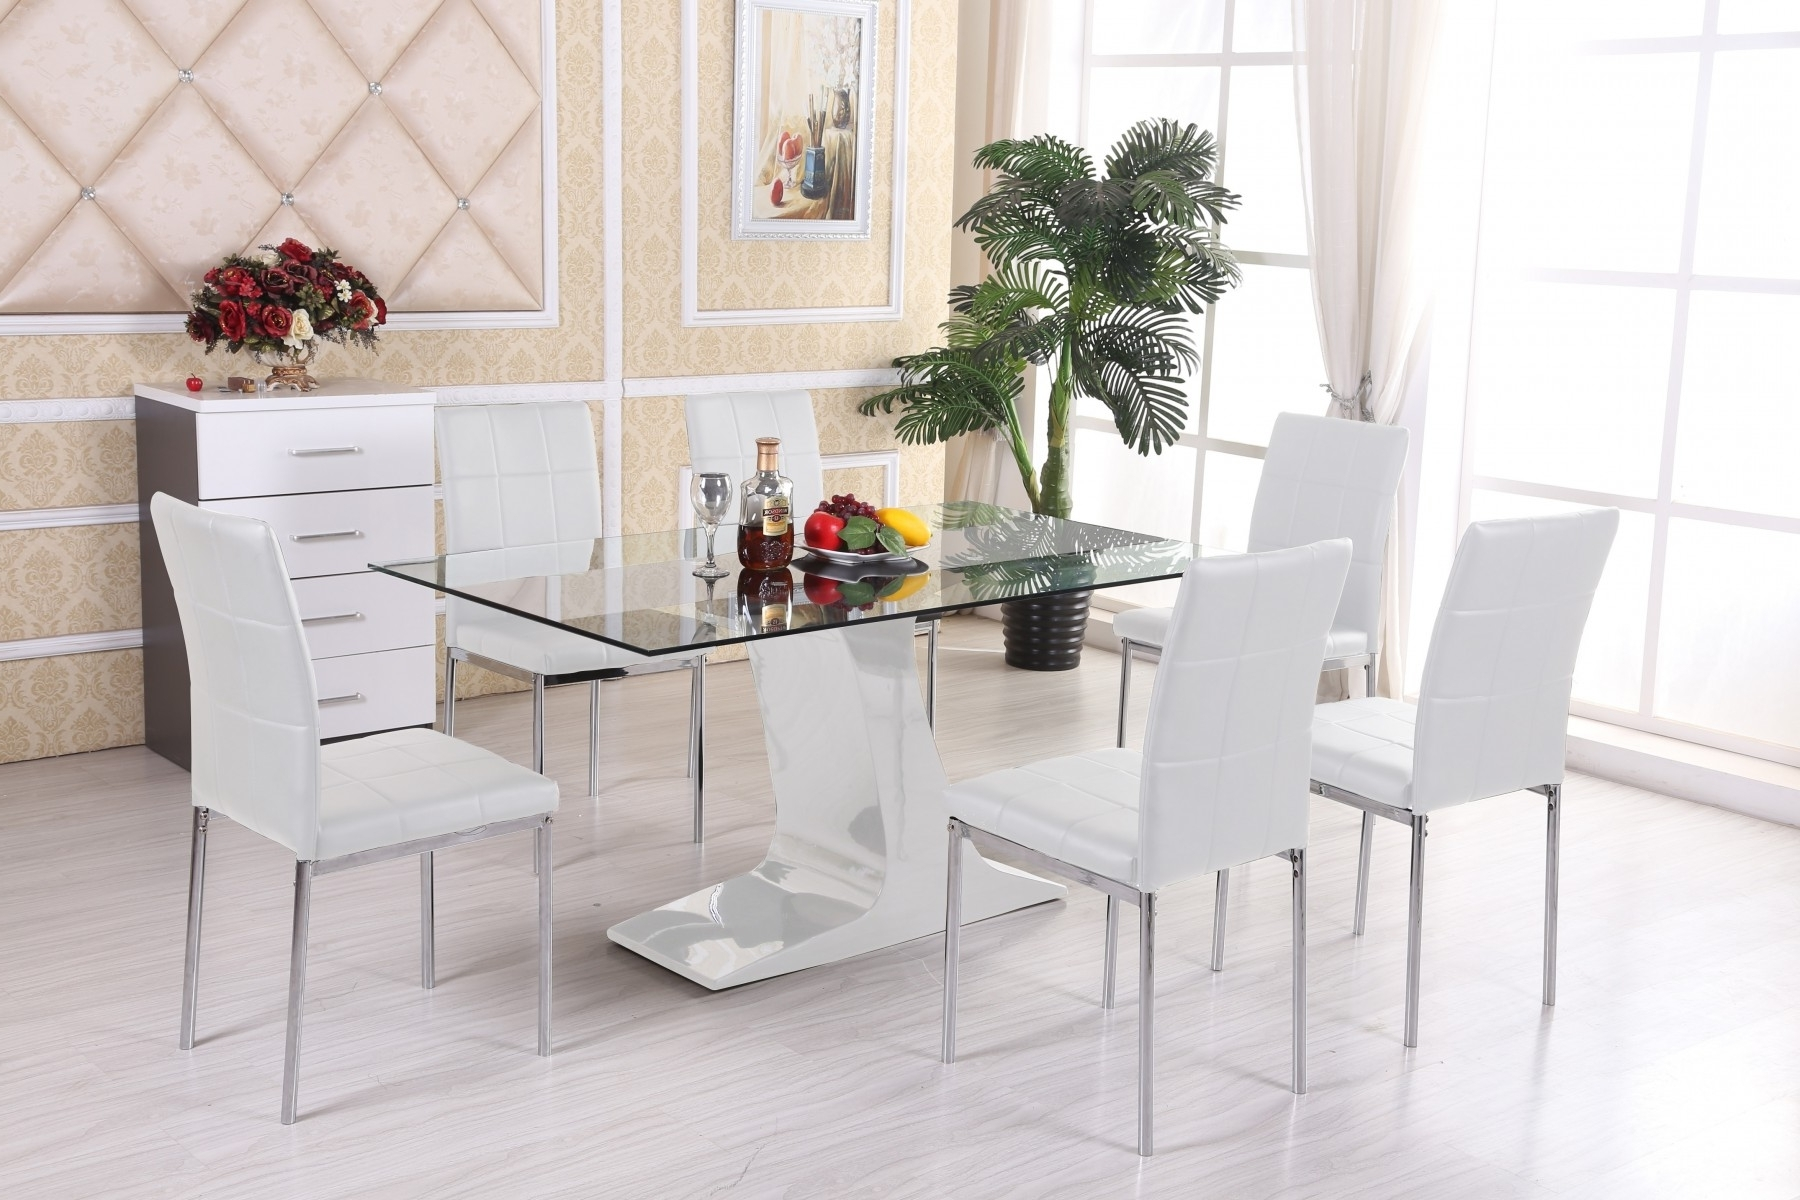 4 Optimal Choices In Glass Dining Table And Chairs – Blogbeen With Most Up To Date Glass Dining Tables 6 Chairs (Gallery 7 of 25)